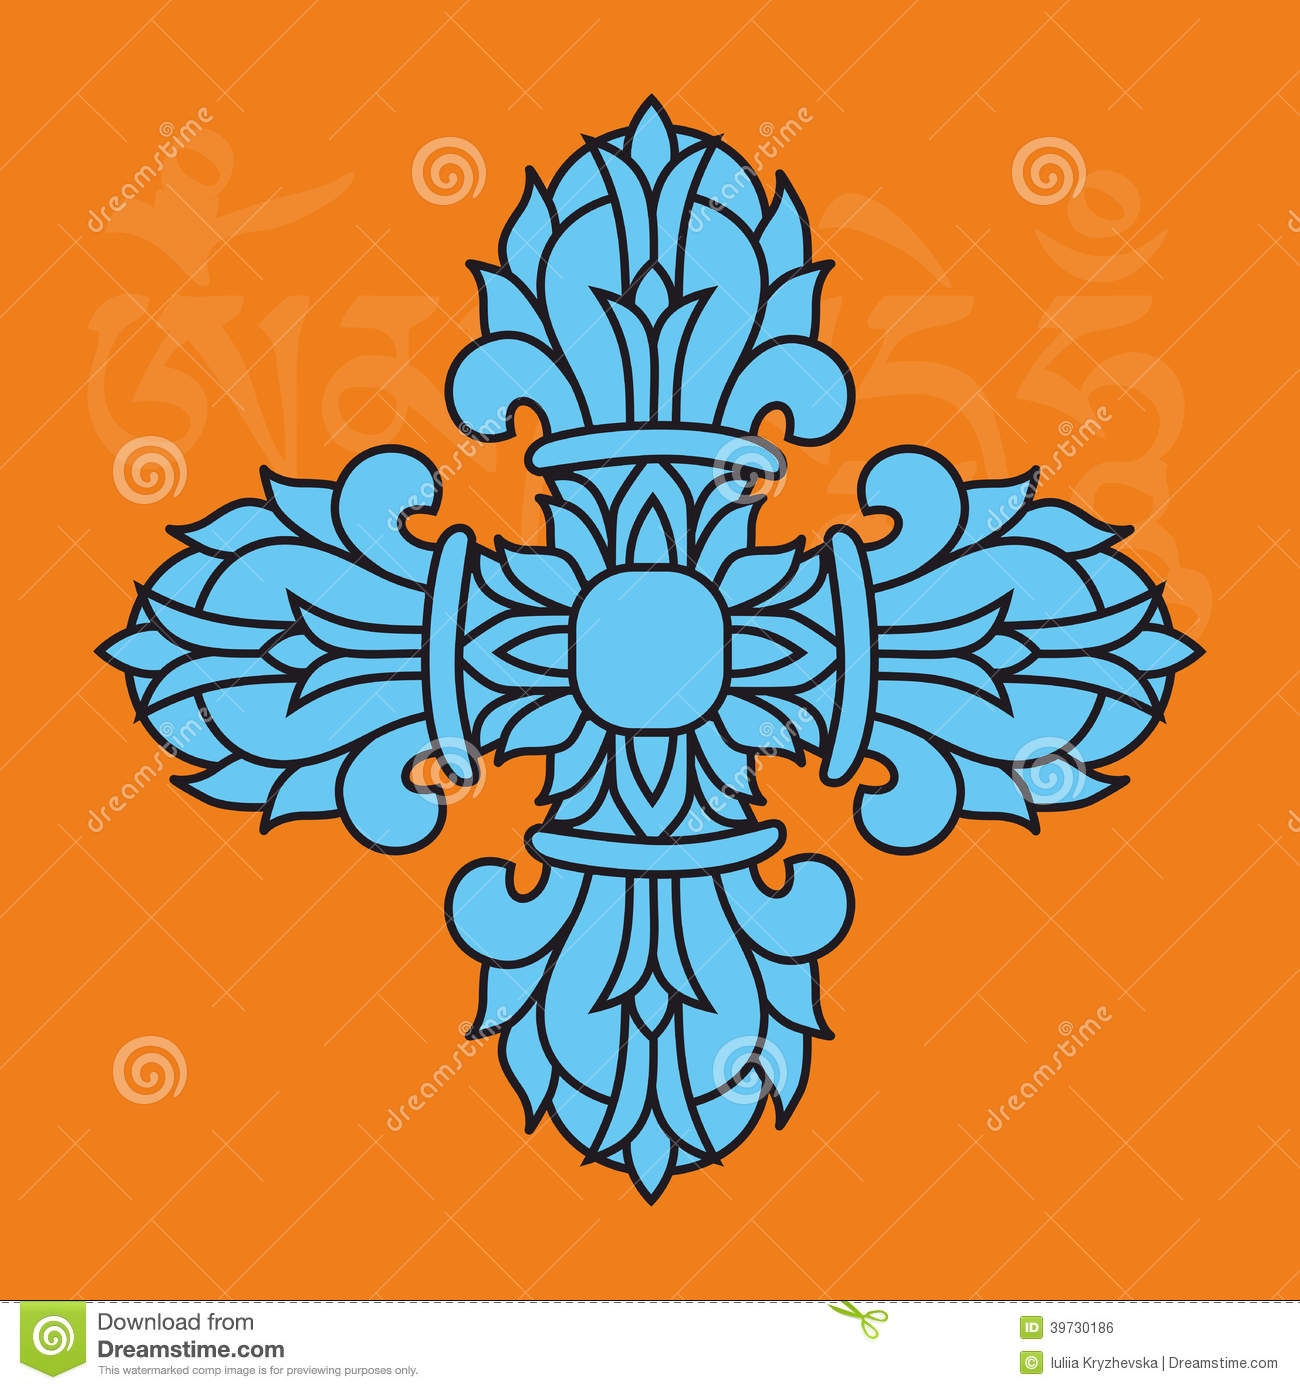 Buddhist symbols images gallery symbol and sign ideas buddhist religious symbol vajra or dorje male attributevector buddhist religious symbol vajra or dorje male attributevector buycottarizona